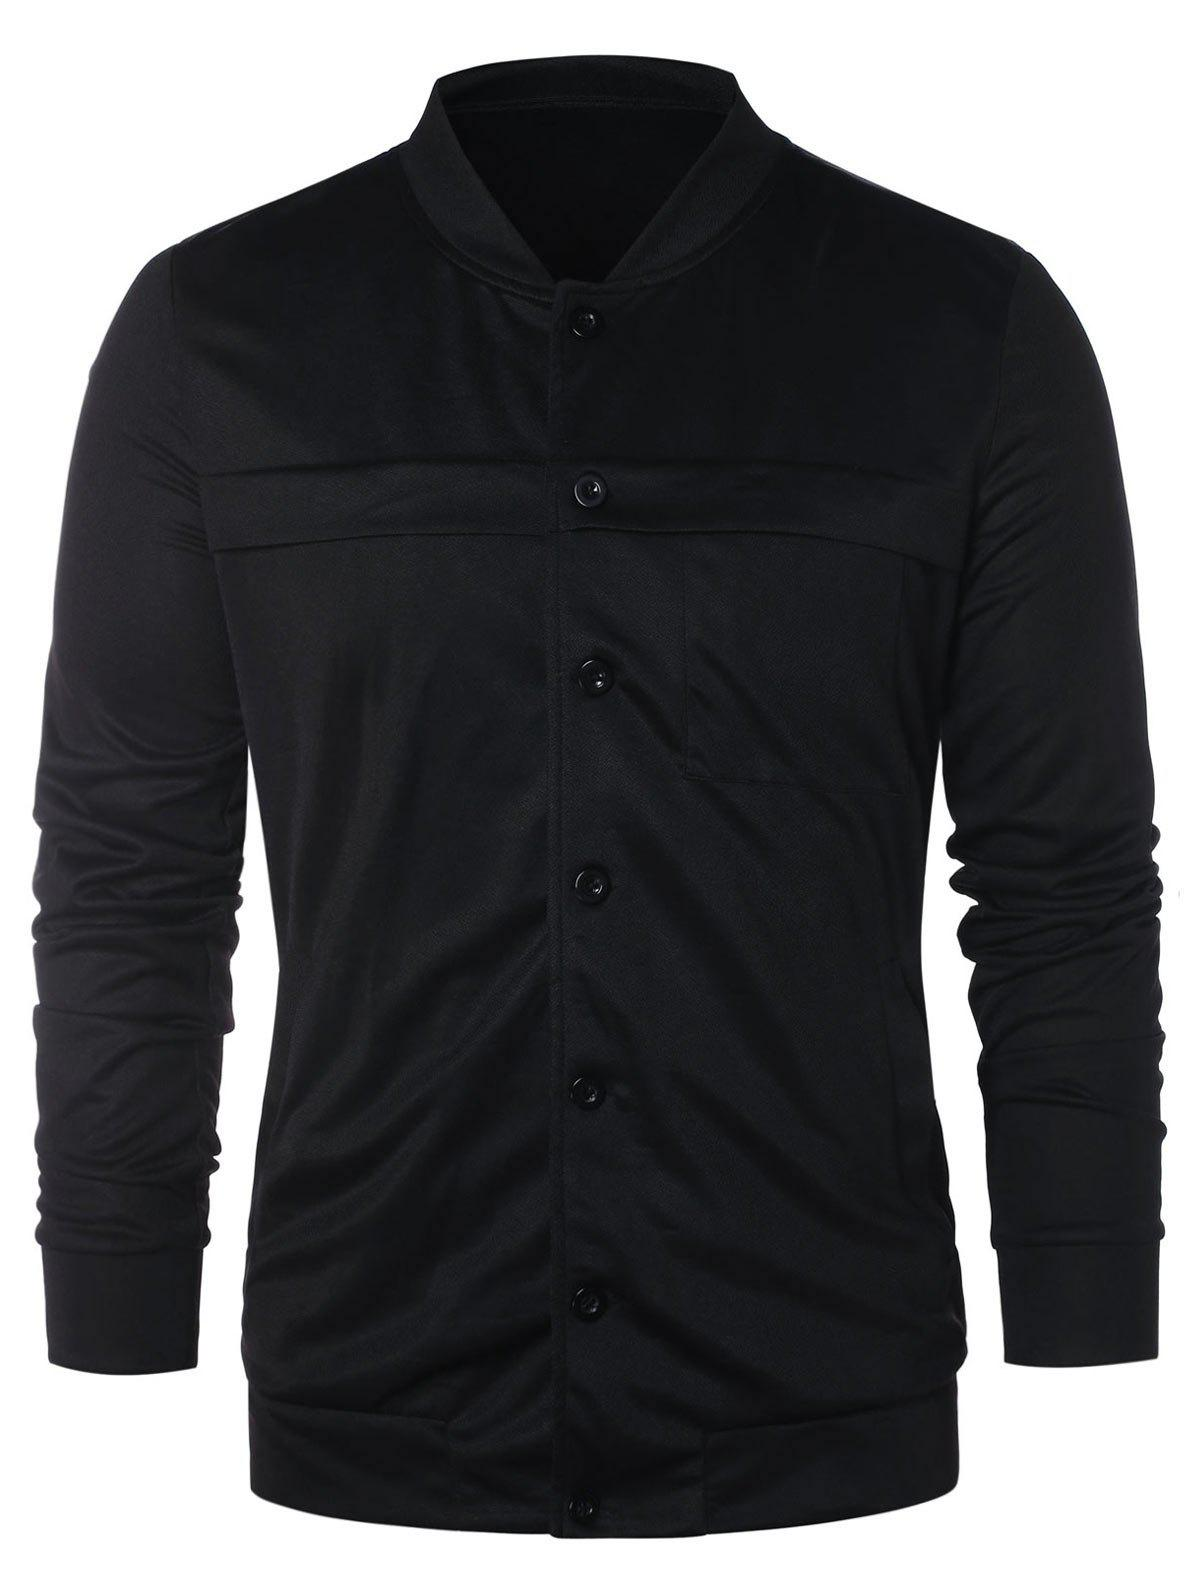 Stand Collar Button Up Solid Jacket - BLACK XL